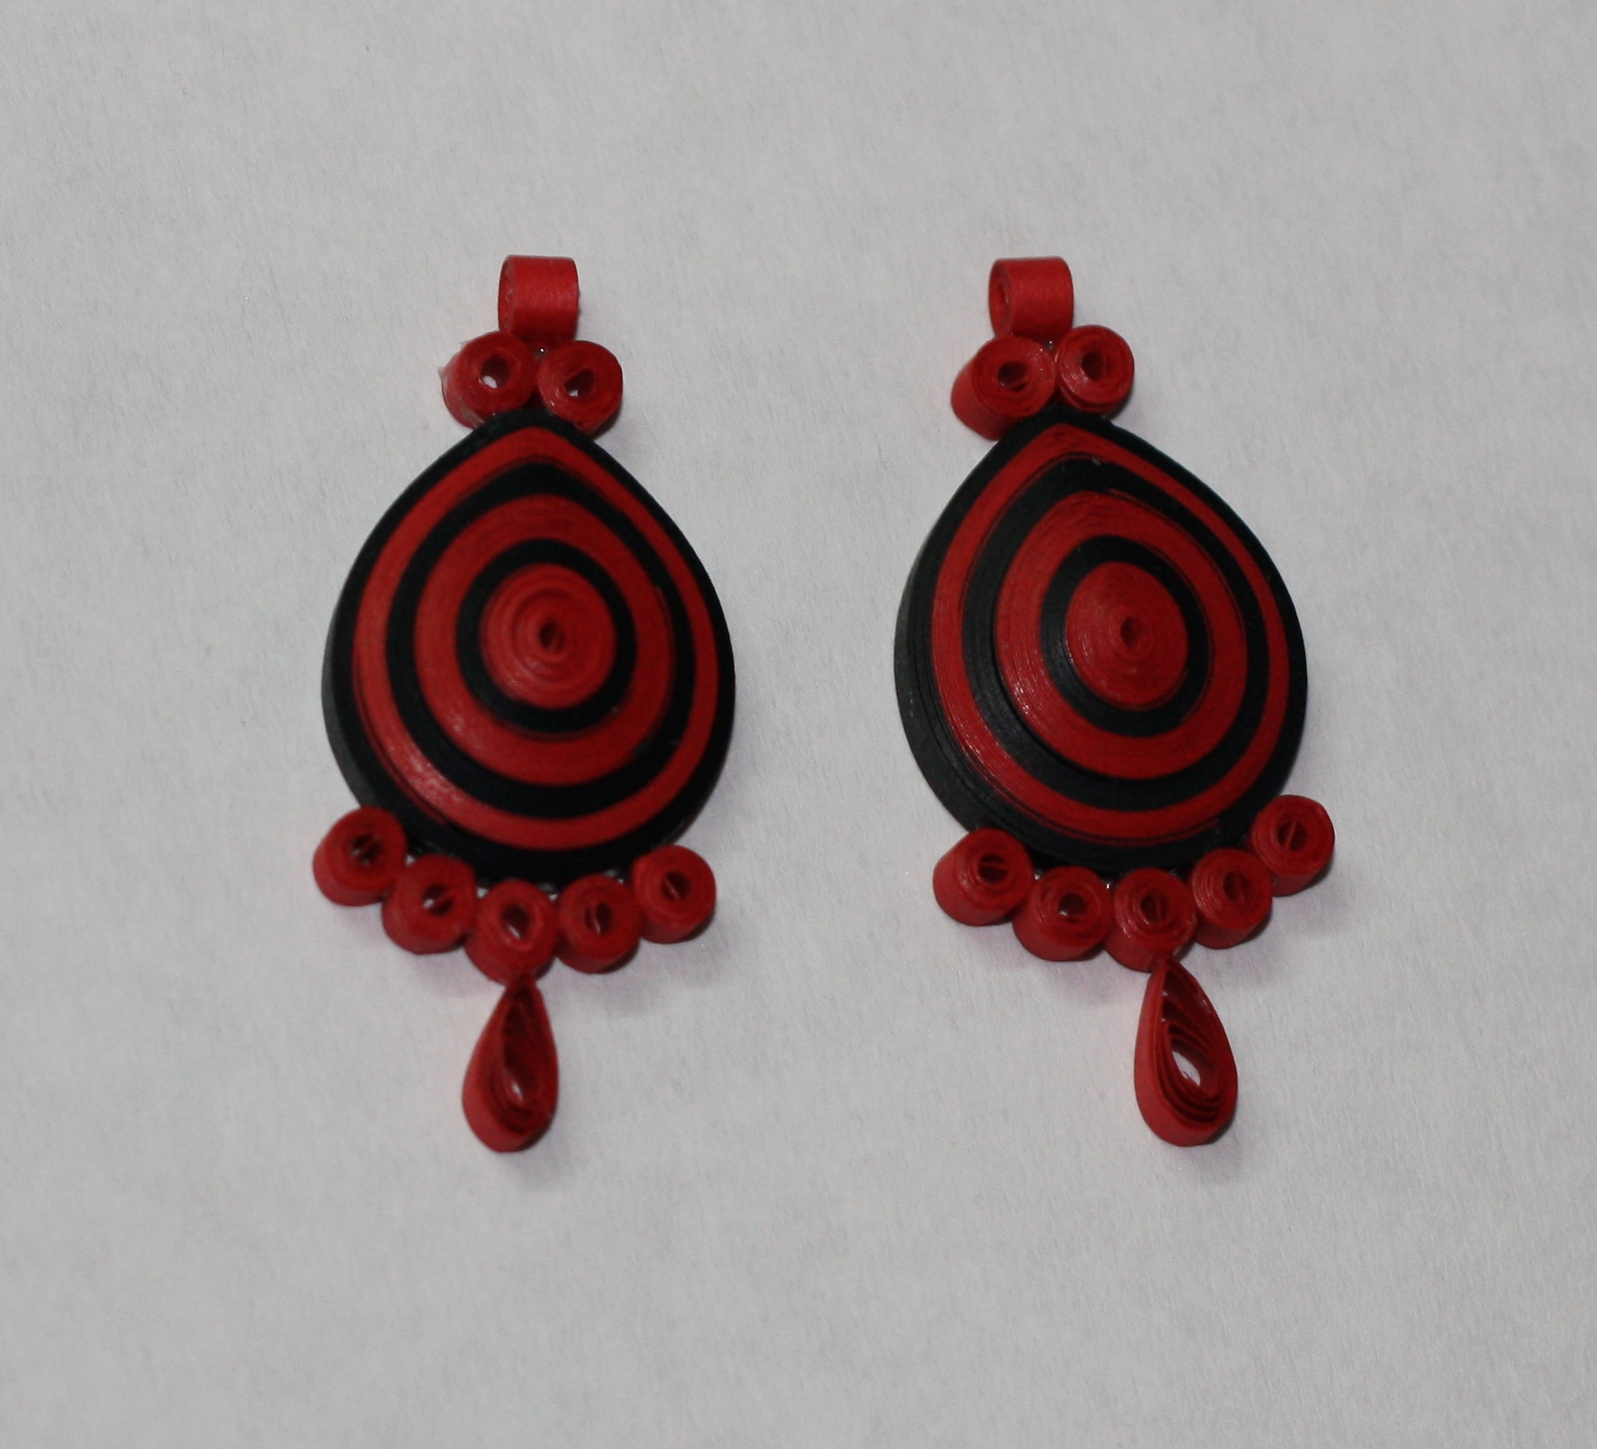 PaperCraftwithAditi: Quilled earrings